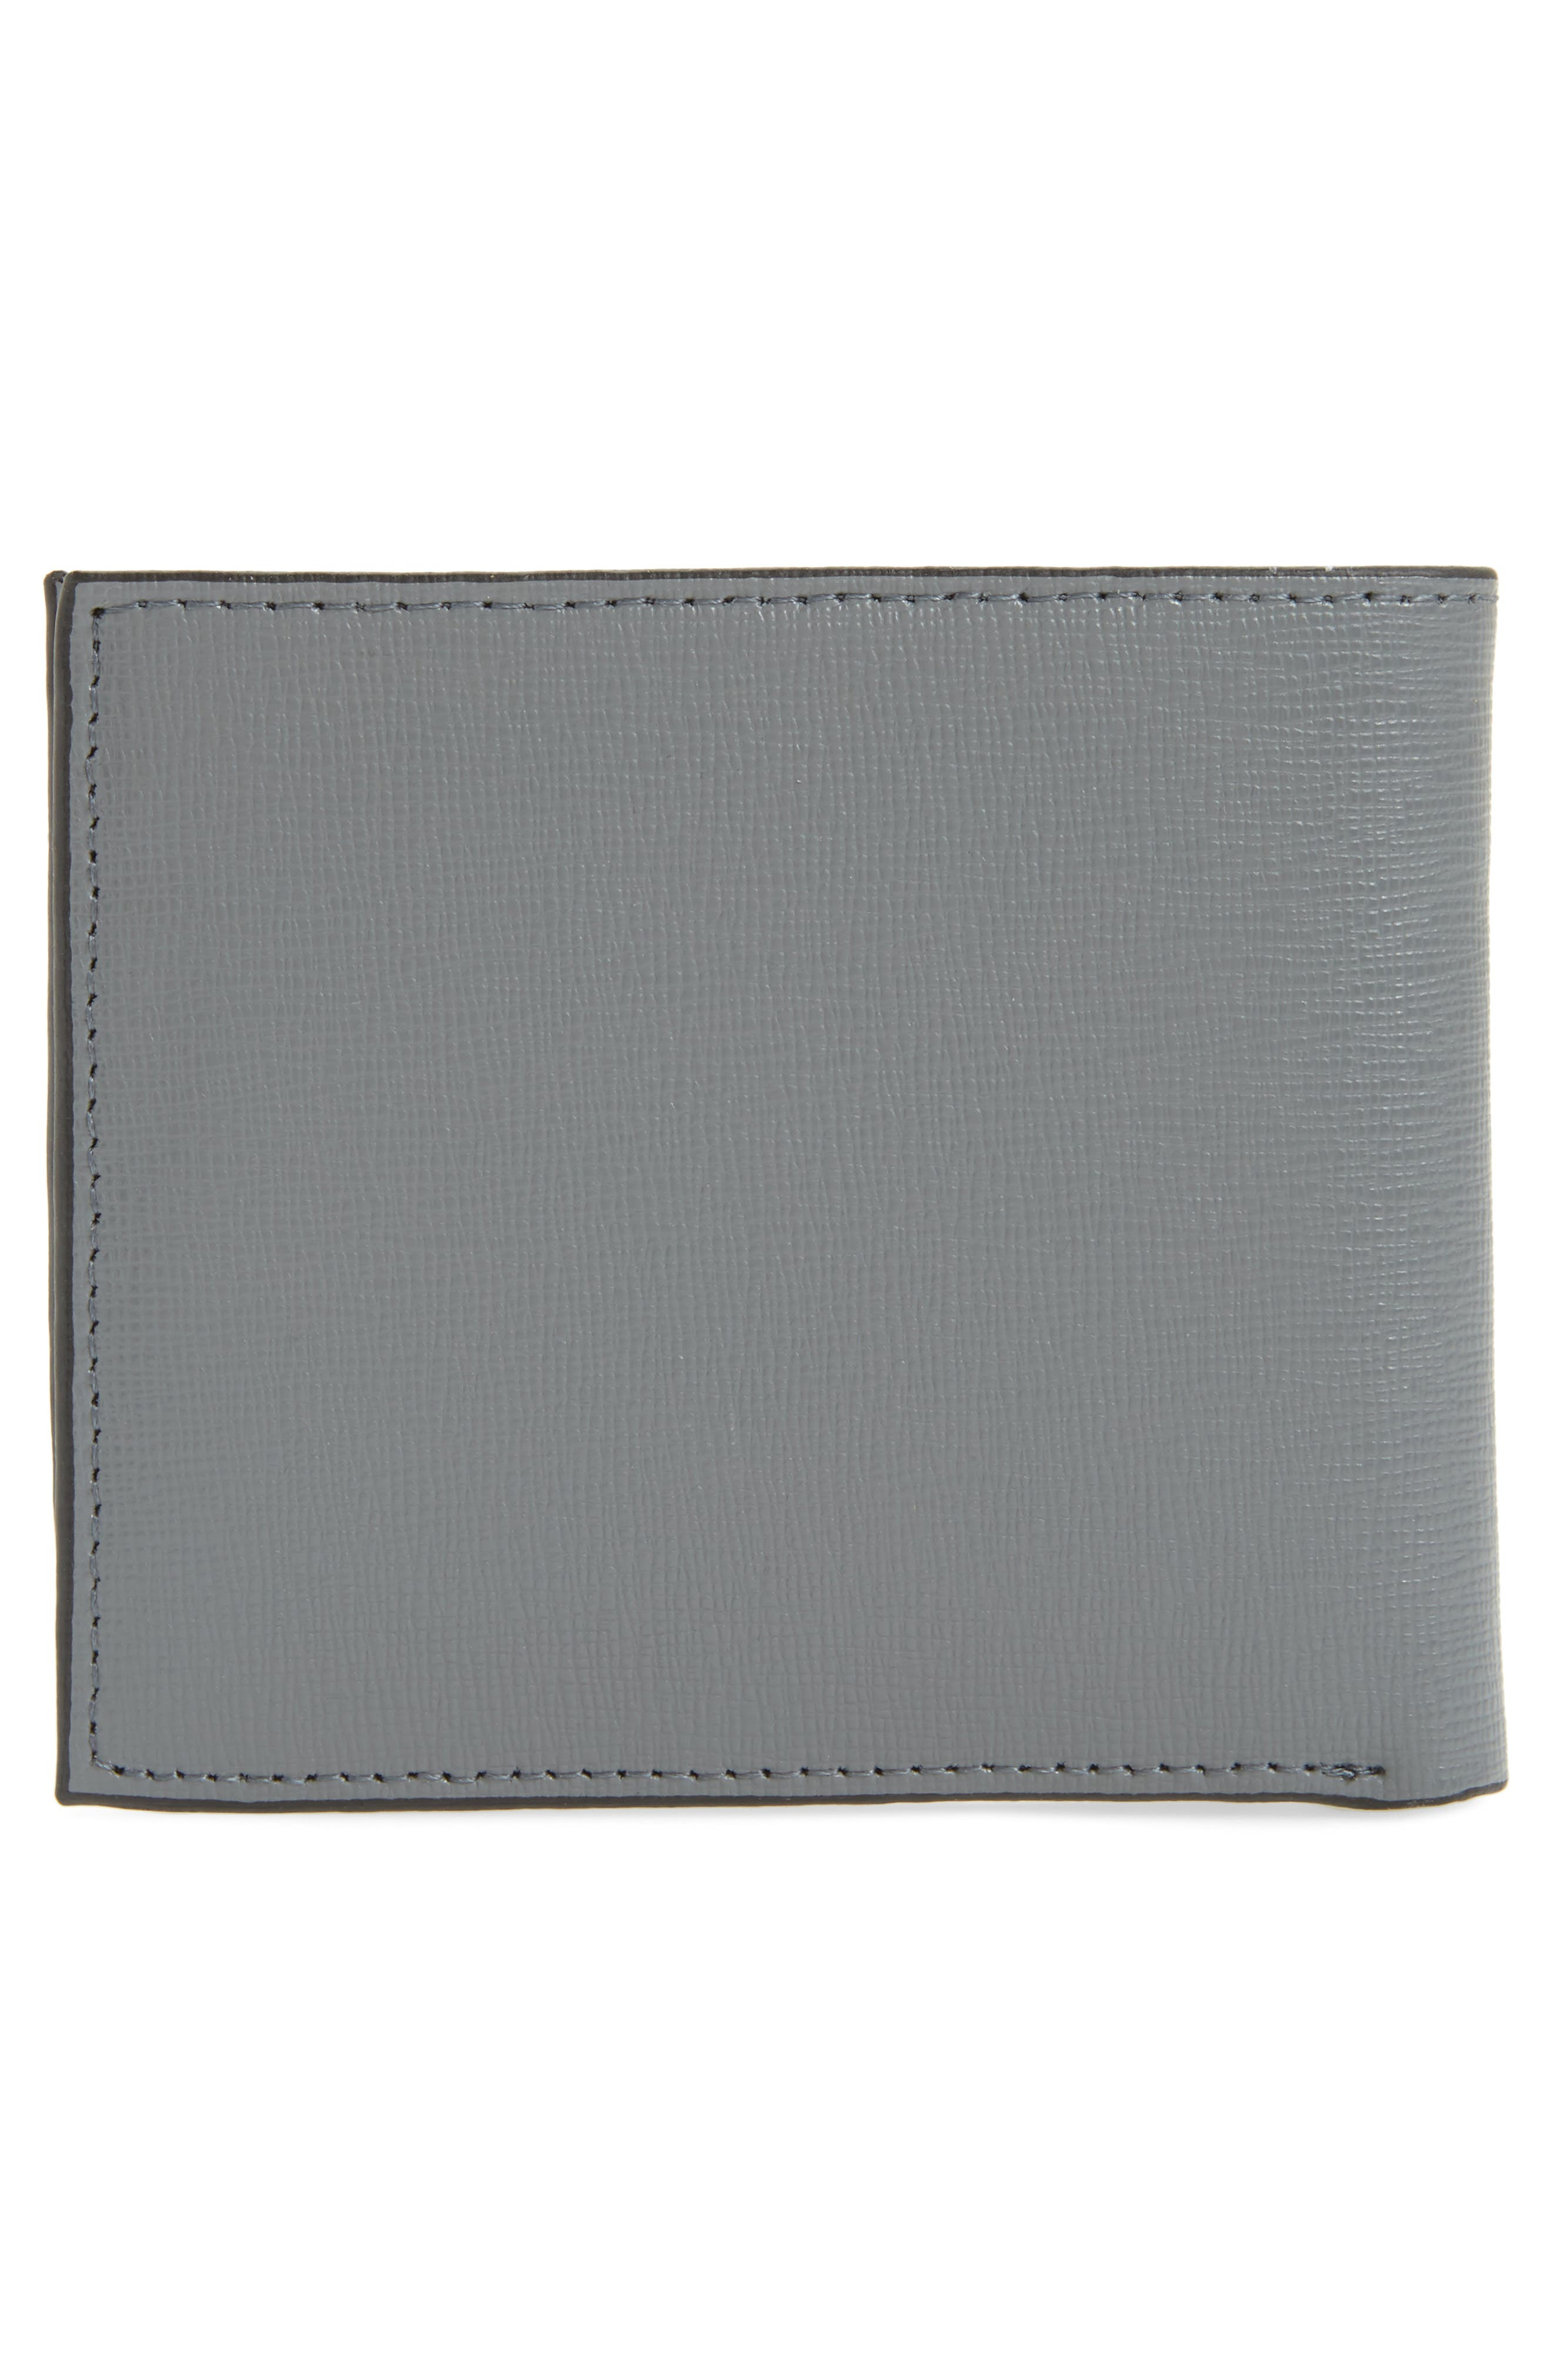 Stitchup Bifold Wallet,                             Alternate thumbnail 6, color,